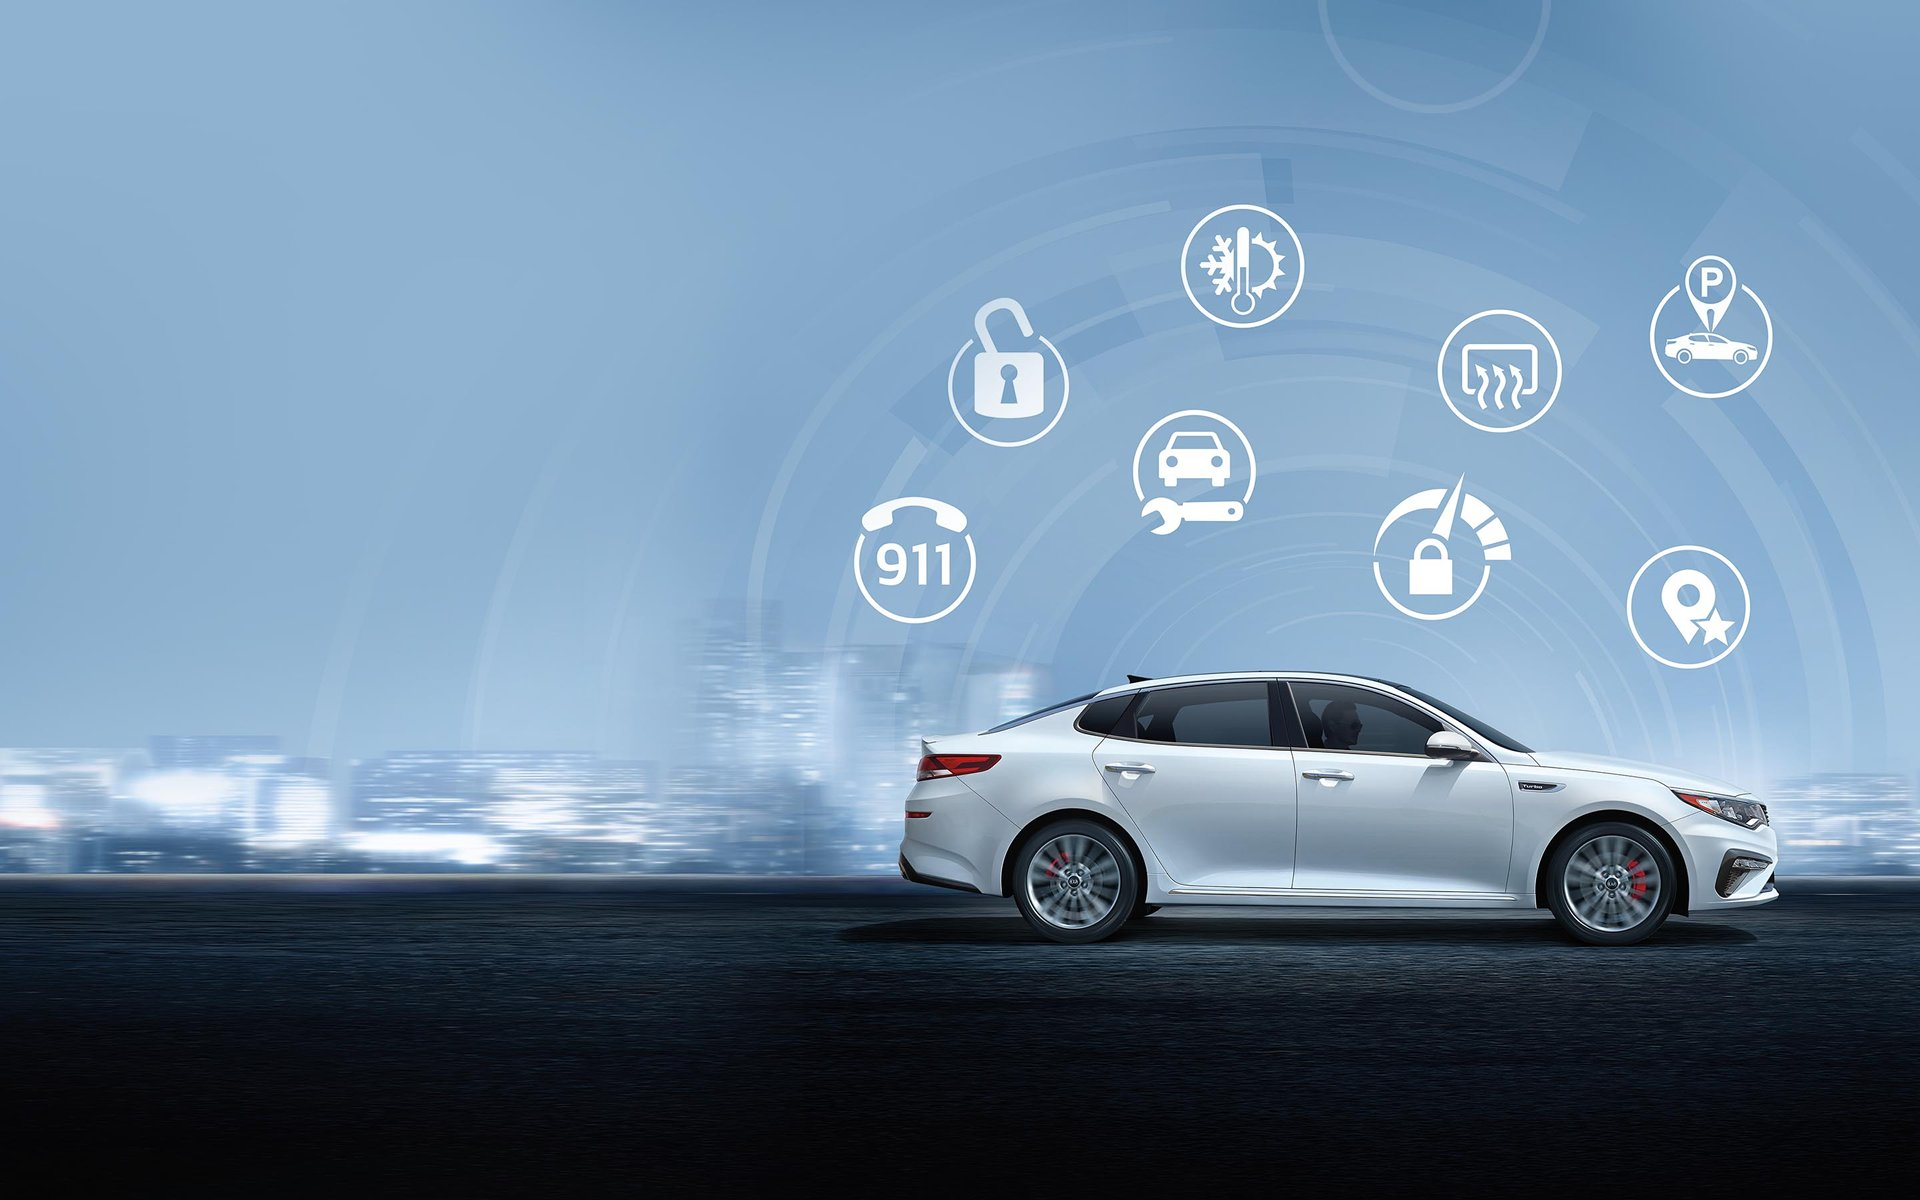 New 2019 Kia Optima Innovation Starts Here.